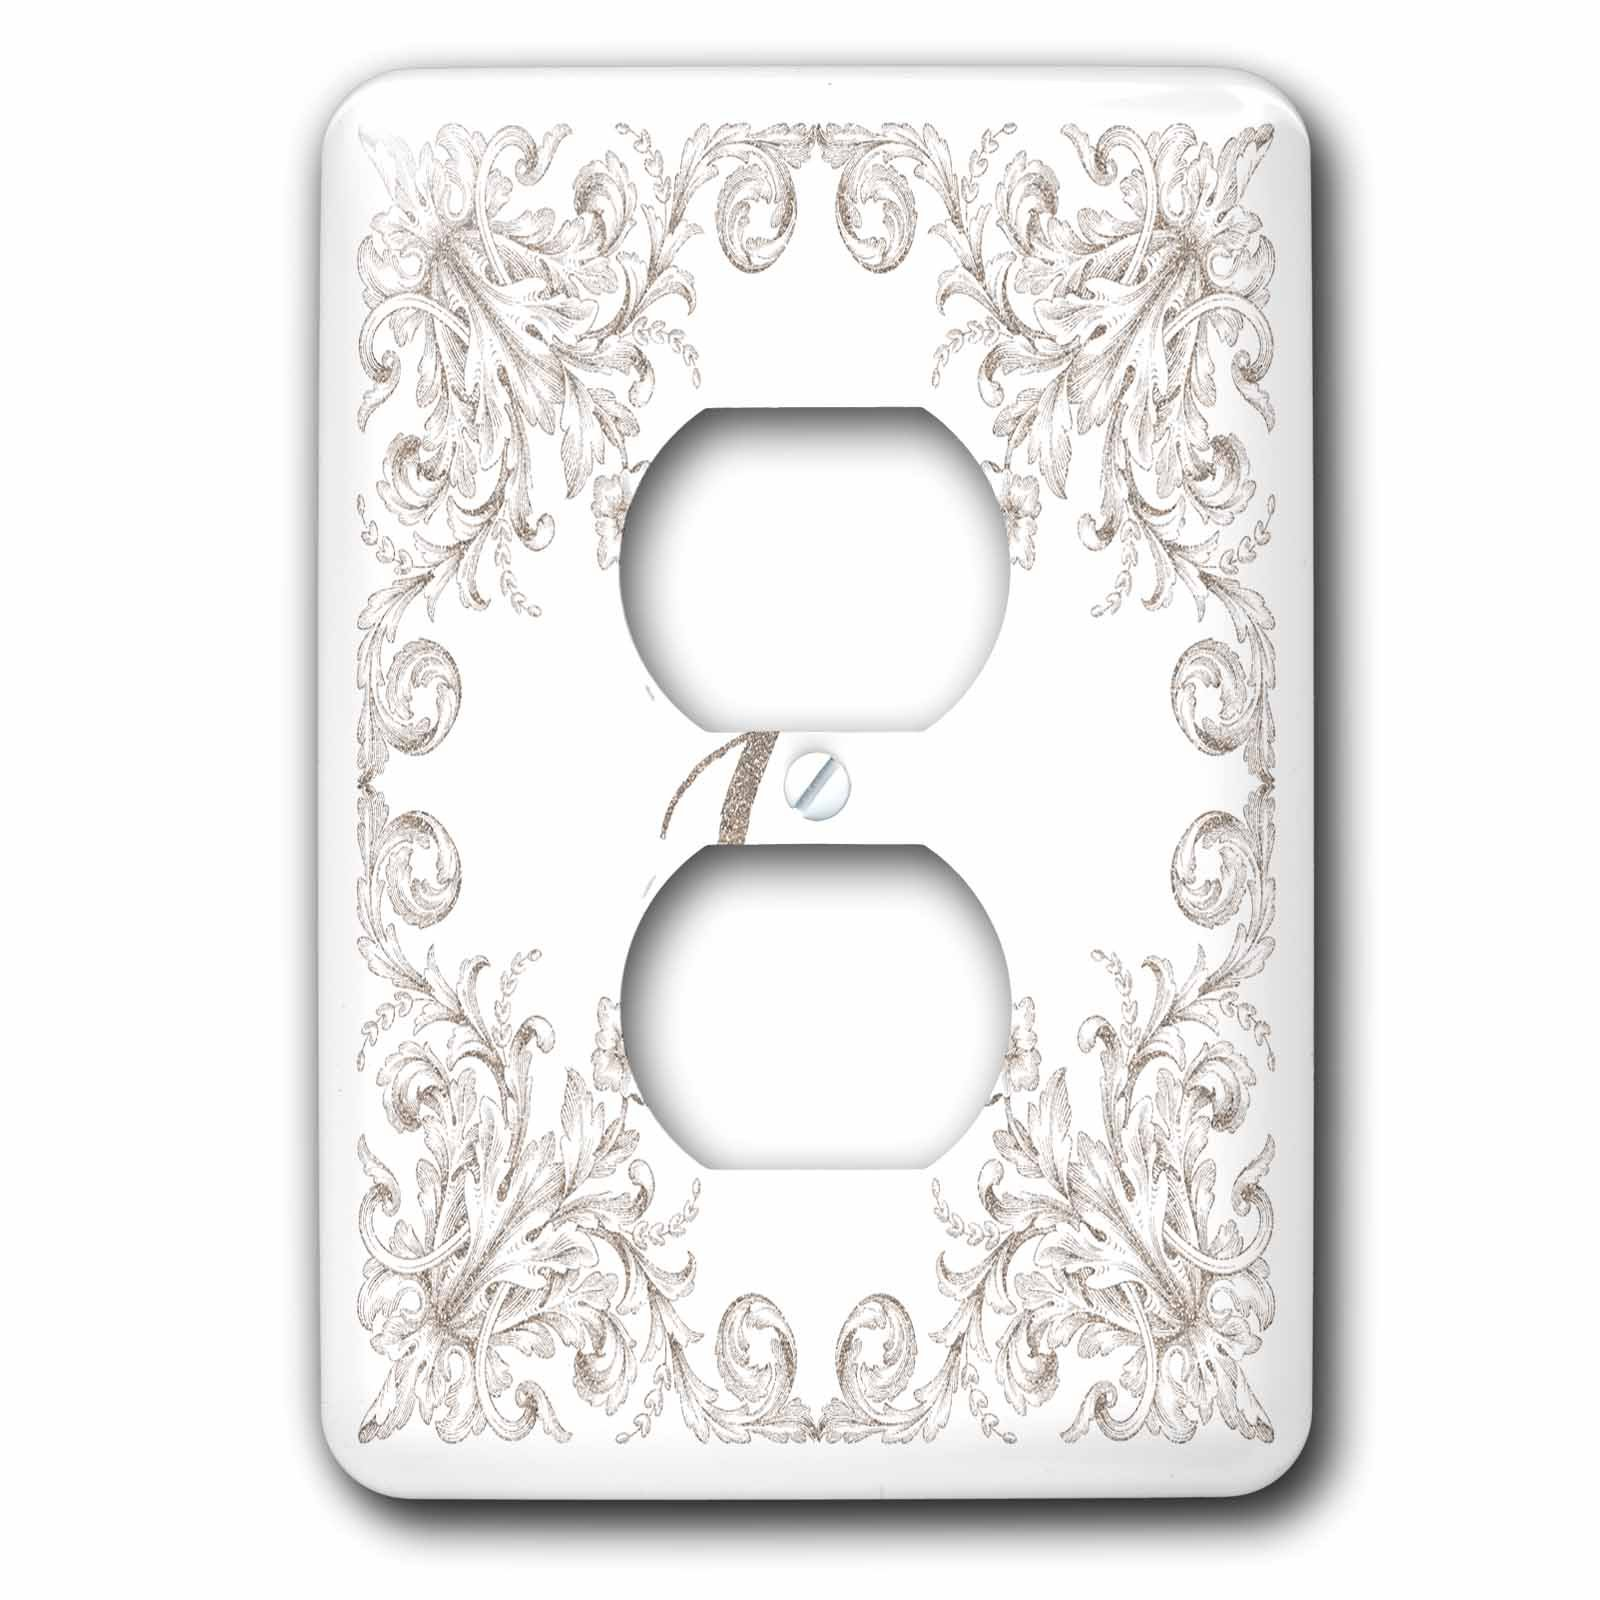 3dRose Uta Naumann Personal Monogram Initials - Letter C Personal Luxury Vintage Glitter Monogram-Personalized Initial - Light Switch Covers - 2 plug outlet cover (lsp_275302_6)